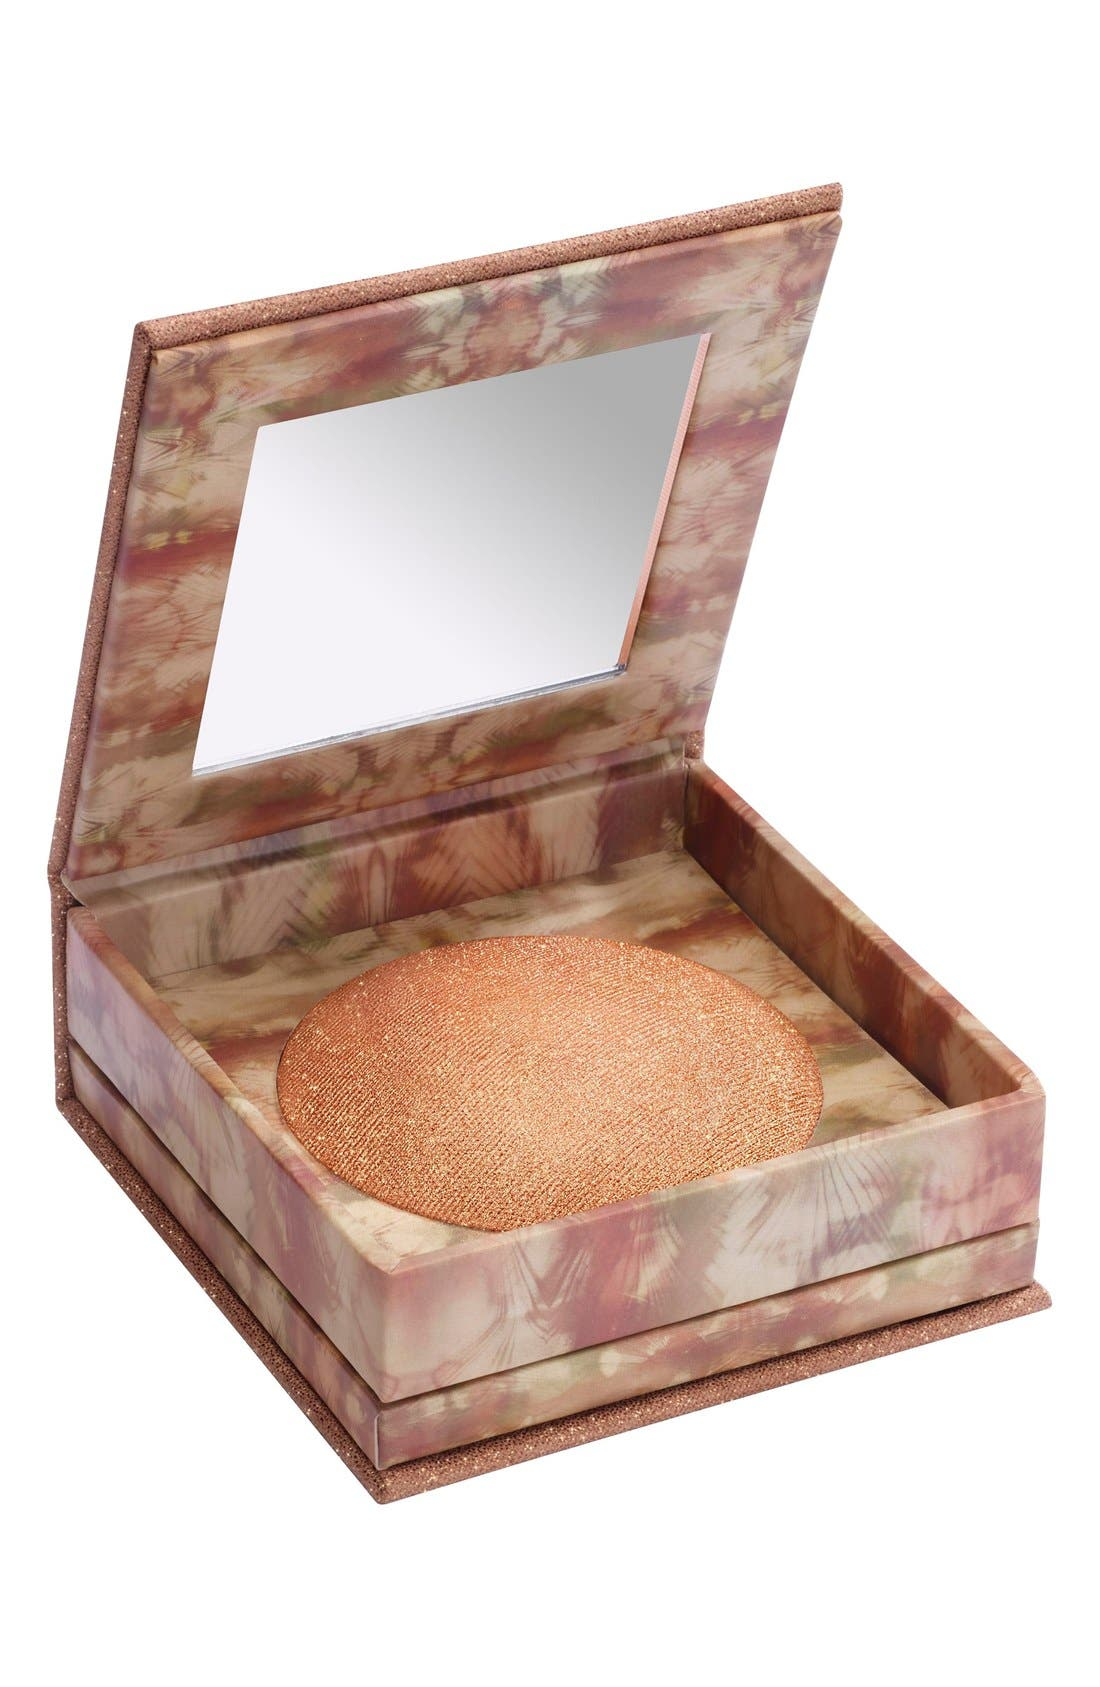 Urban Decay 'Naked Illuminated' Shimmering Powder for Face & Body